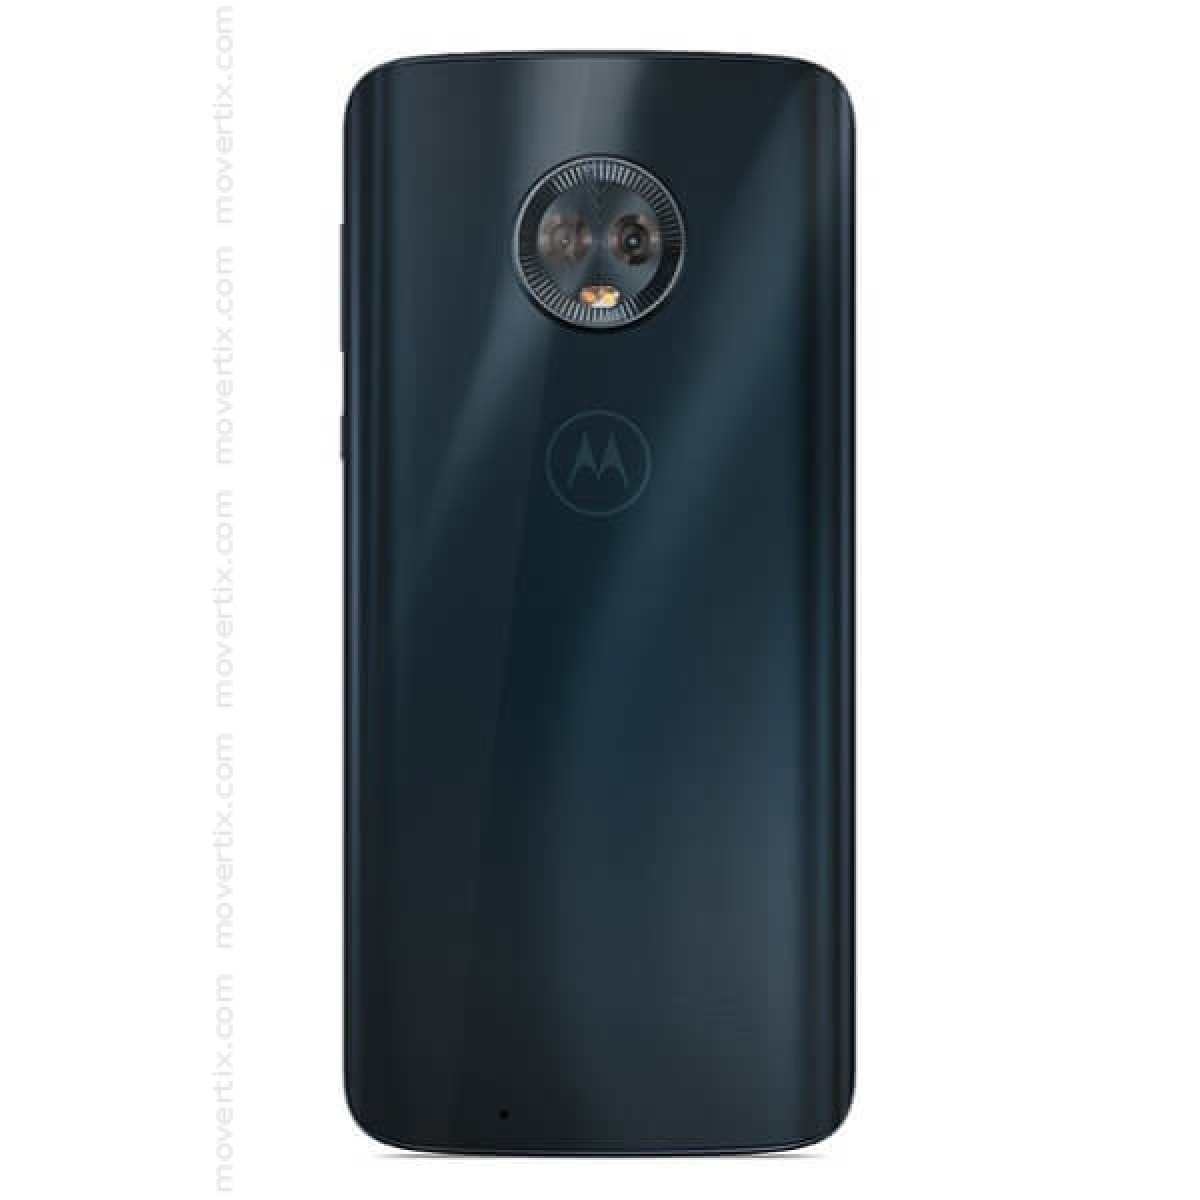 ac92e92a67 The Motorola Moto G6 Dual SIM in blue color with 32GB of storage. The sixth  generation of the Moto G stands out for its dual camera